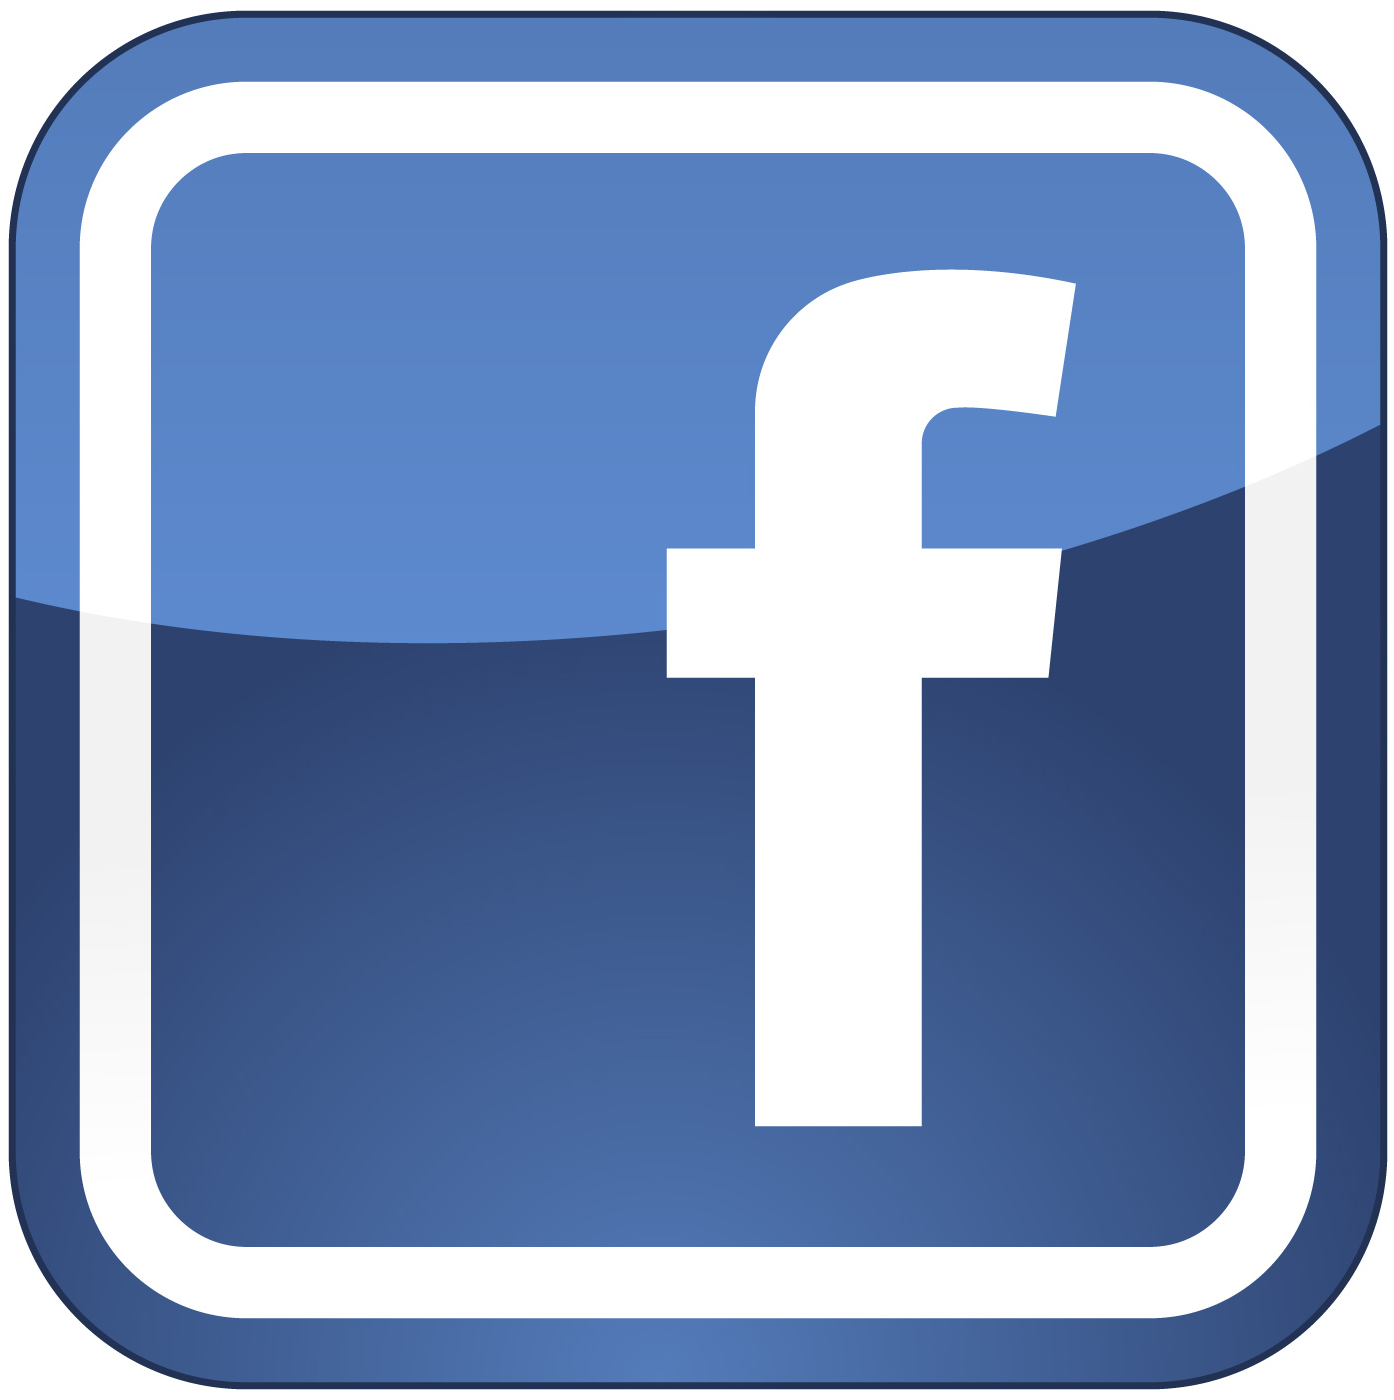 Facebook Logo Transparent PNG Pictures - Free Icons and ...